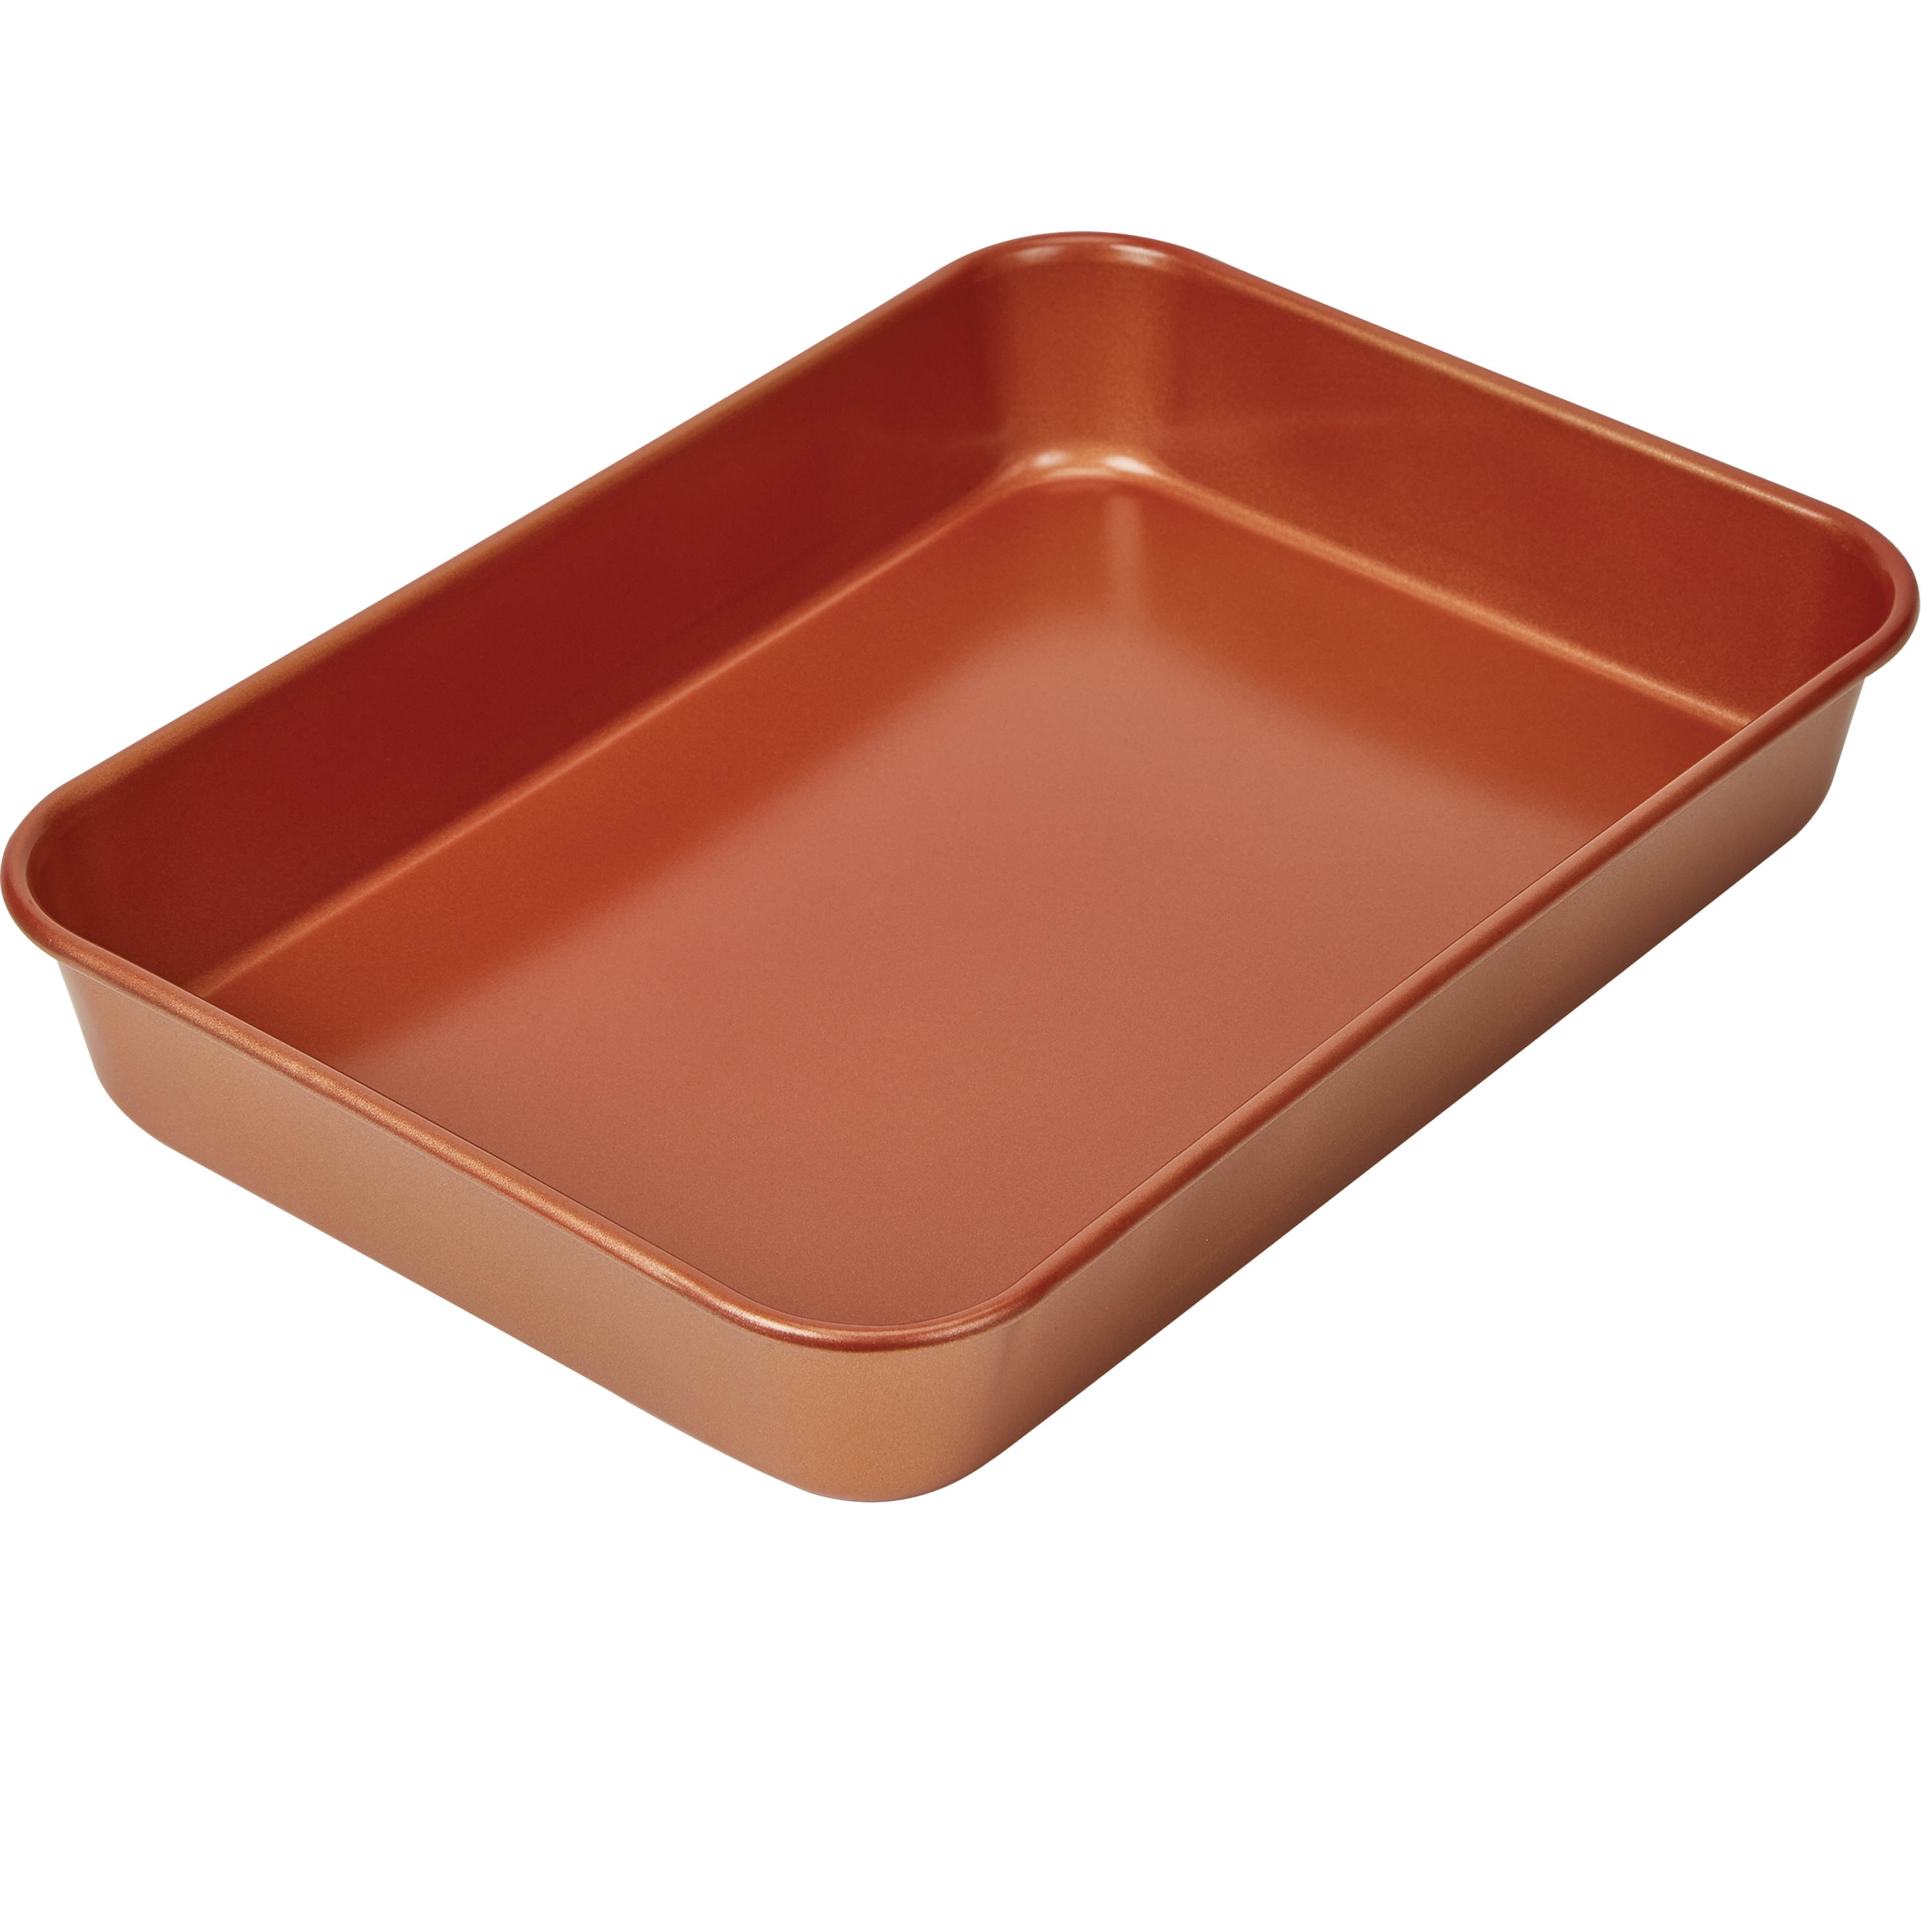 "Copper Chef 9"" x 13"" Cookie Sheet"